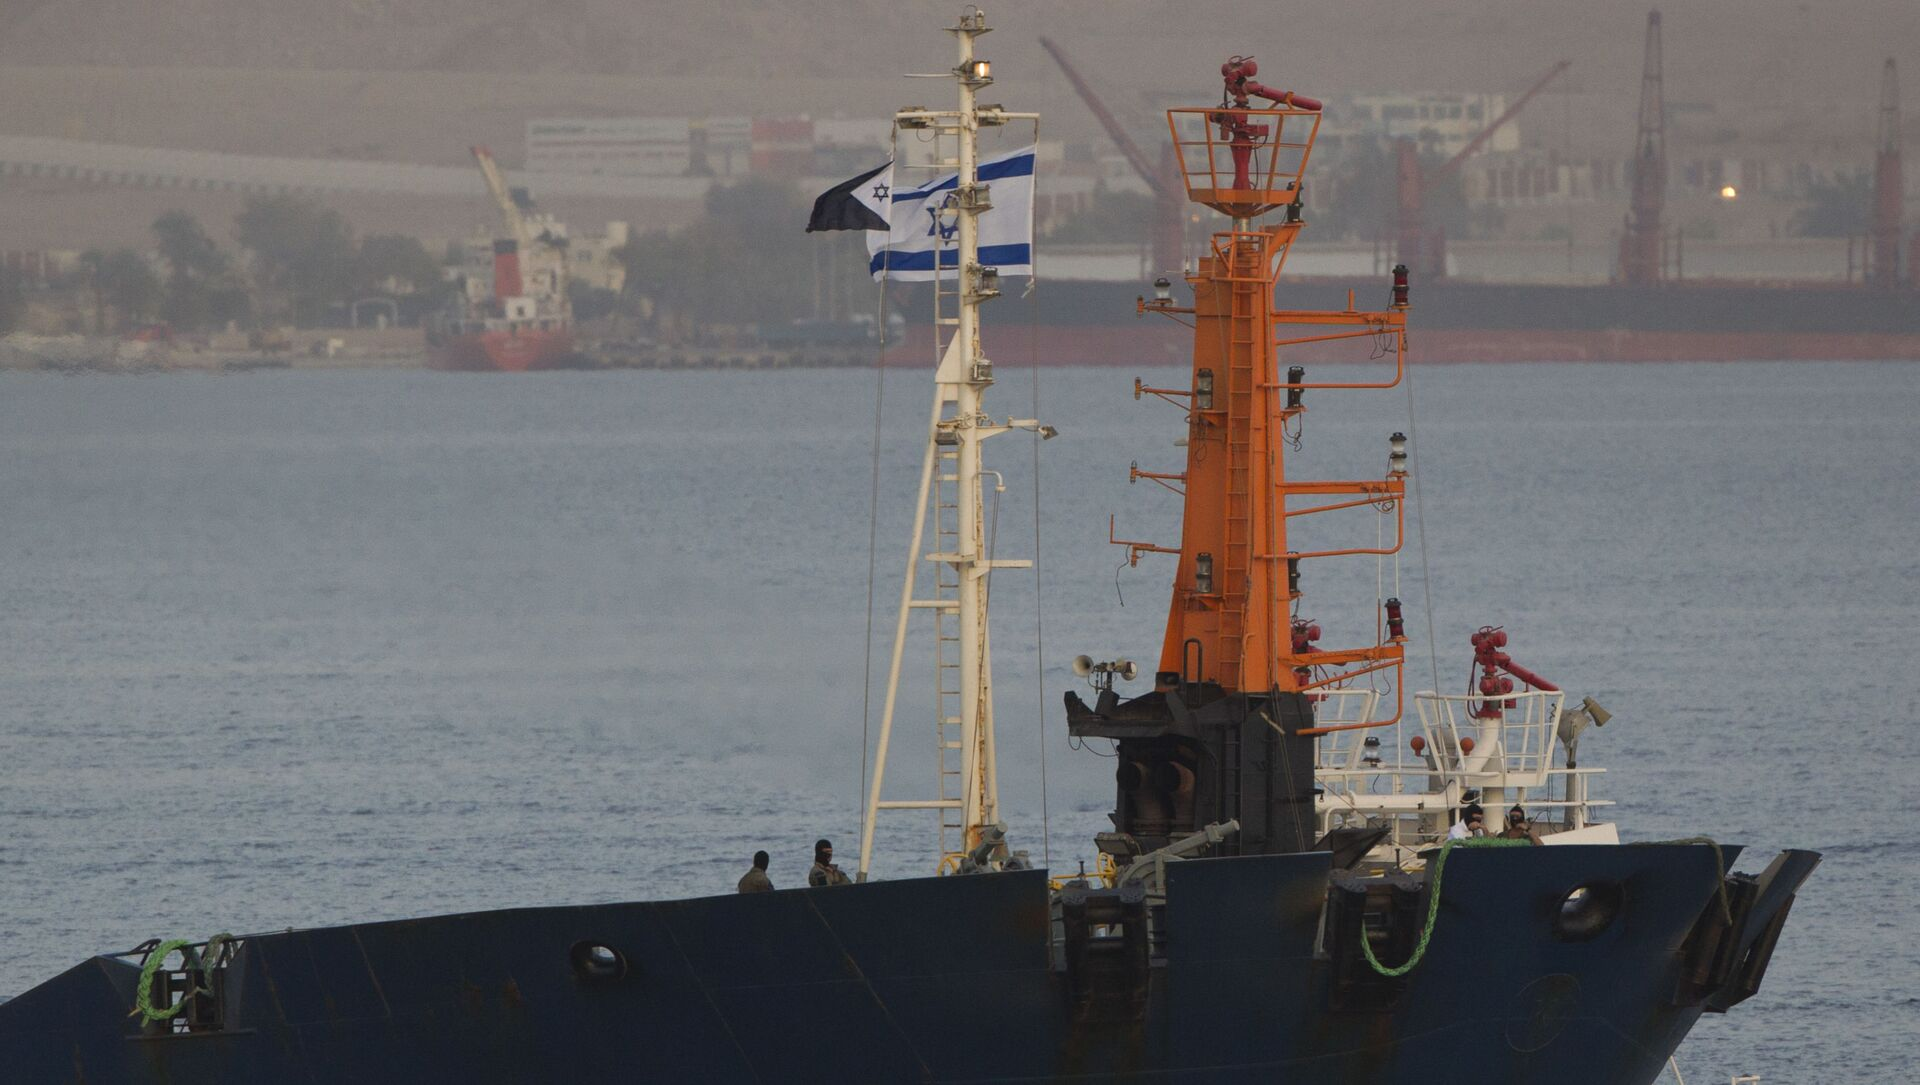 Israeli commandos stand guard on the seized KLOS-C cargo ship as it enters the port, at the Red Sea resort city of Eilat, southern Israel, Saturday, March 8, 2014. Israeli naval forces raided the ship hundreds of miles from Israel, in the Red Sea on Wednesday and seized dozens of advanced rockets from Iran destined for Palestinian militants in Gaza, according to the Israeli military. The Islamic Jihad, an Iranian-backed militant group in the Gaza Strip says it is not involved in a seized missile shipment. - Sputnik International, 1920, 07.04.2021